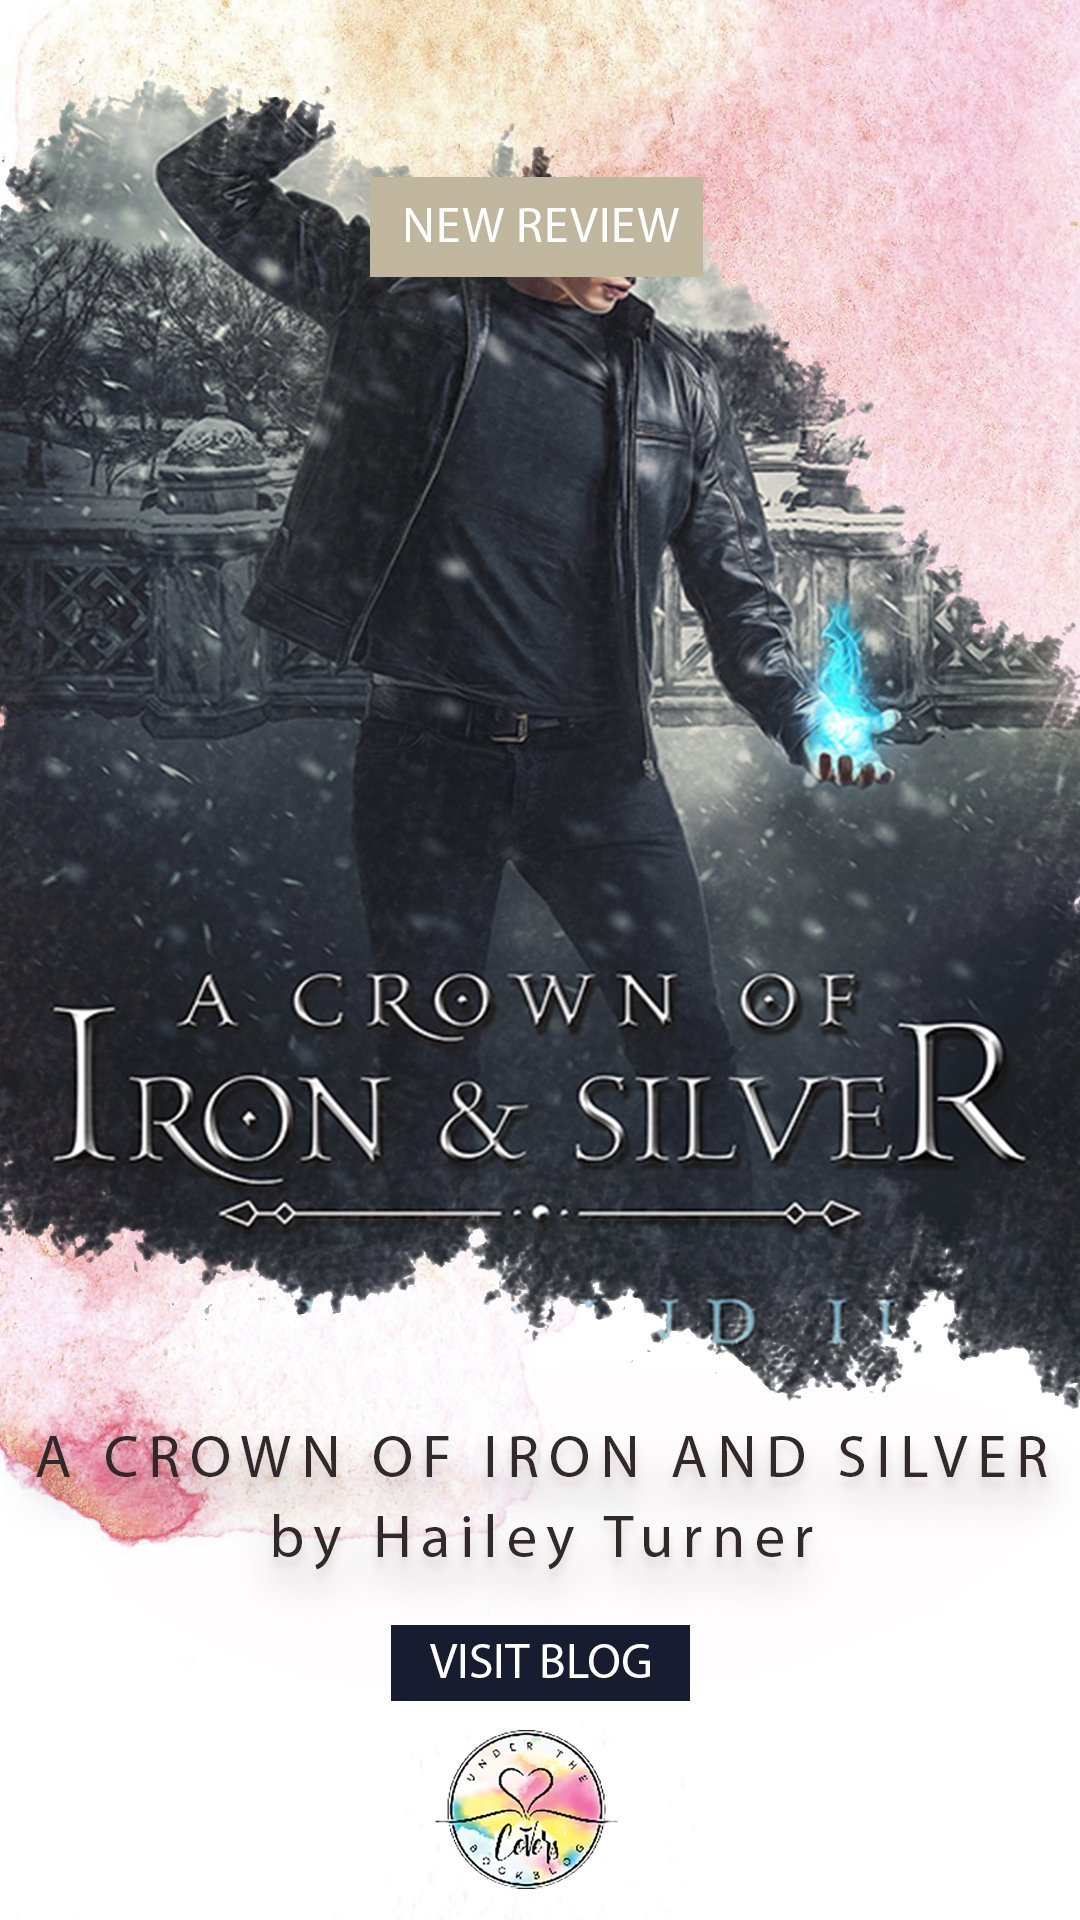 ARC Review: A Crown of Iron and Silver by Hailey Turner